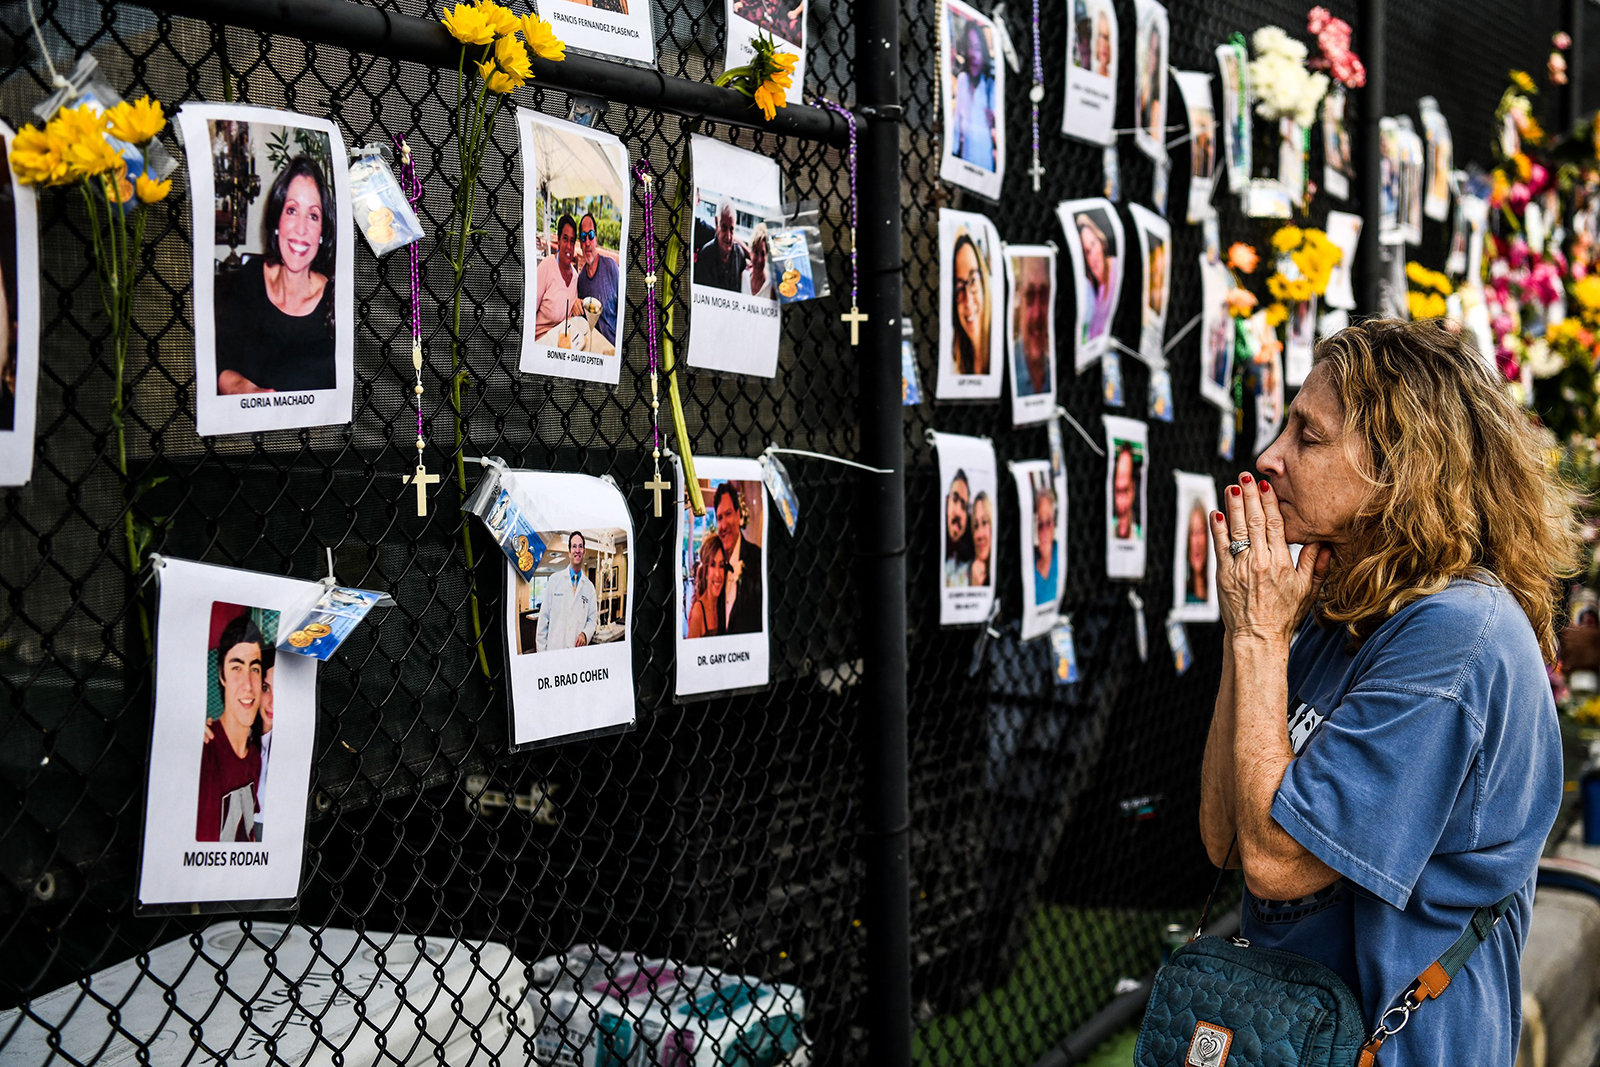 A woman prays in front of photos at the makeshift memorial for the victims of the building collapse, near the site of the accident in Surfside, Florida, north of Miami Beach on June 27.